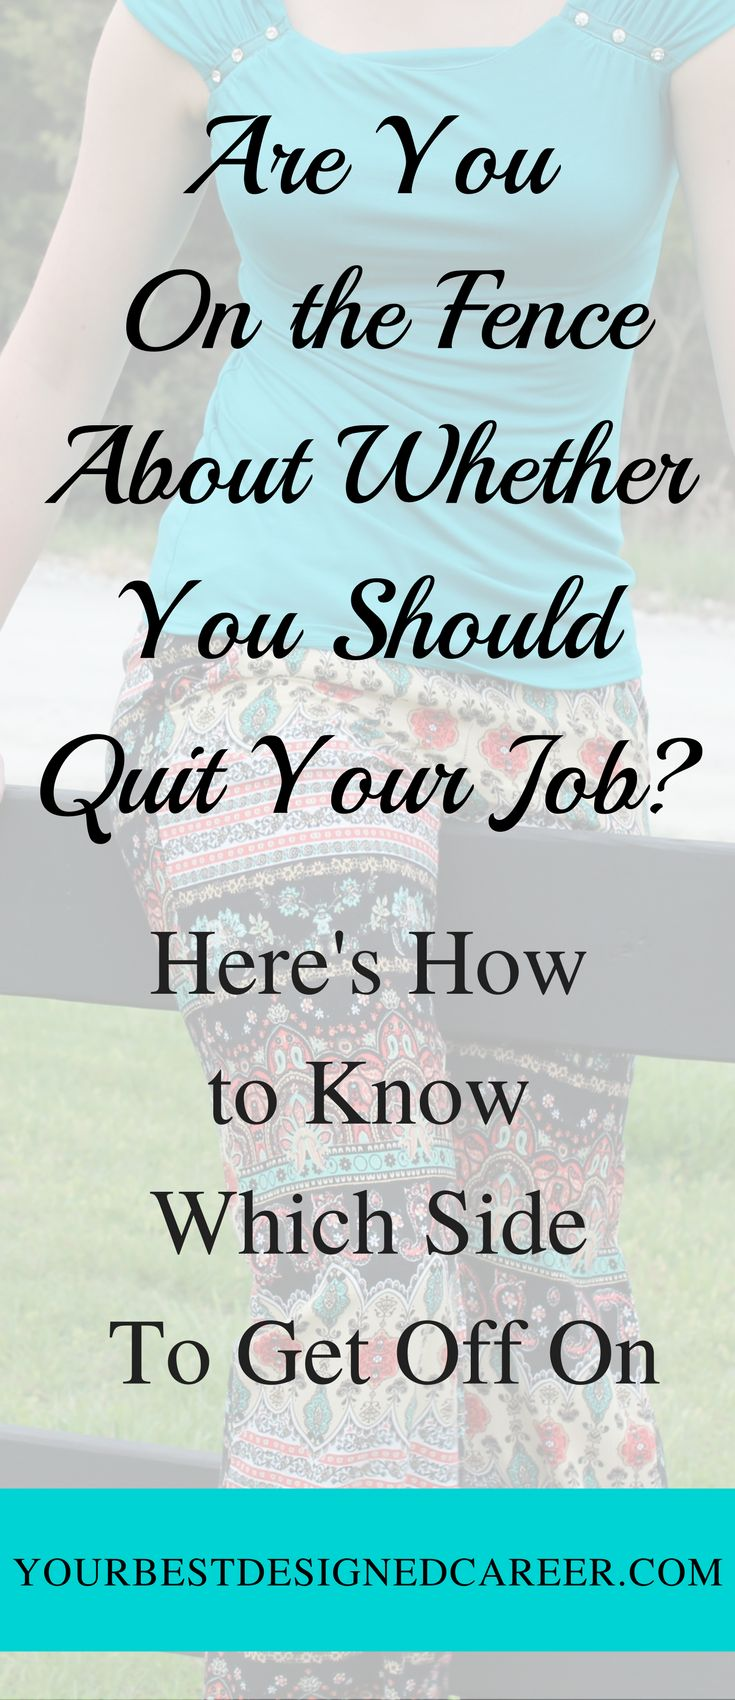 best ideas about quitting job quit job job 17 best ideas about quitting job quit job job quotes and hate my job